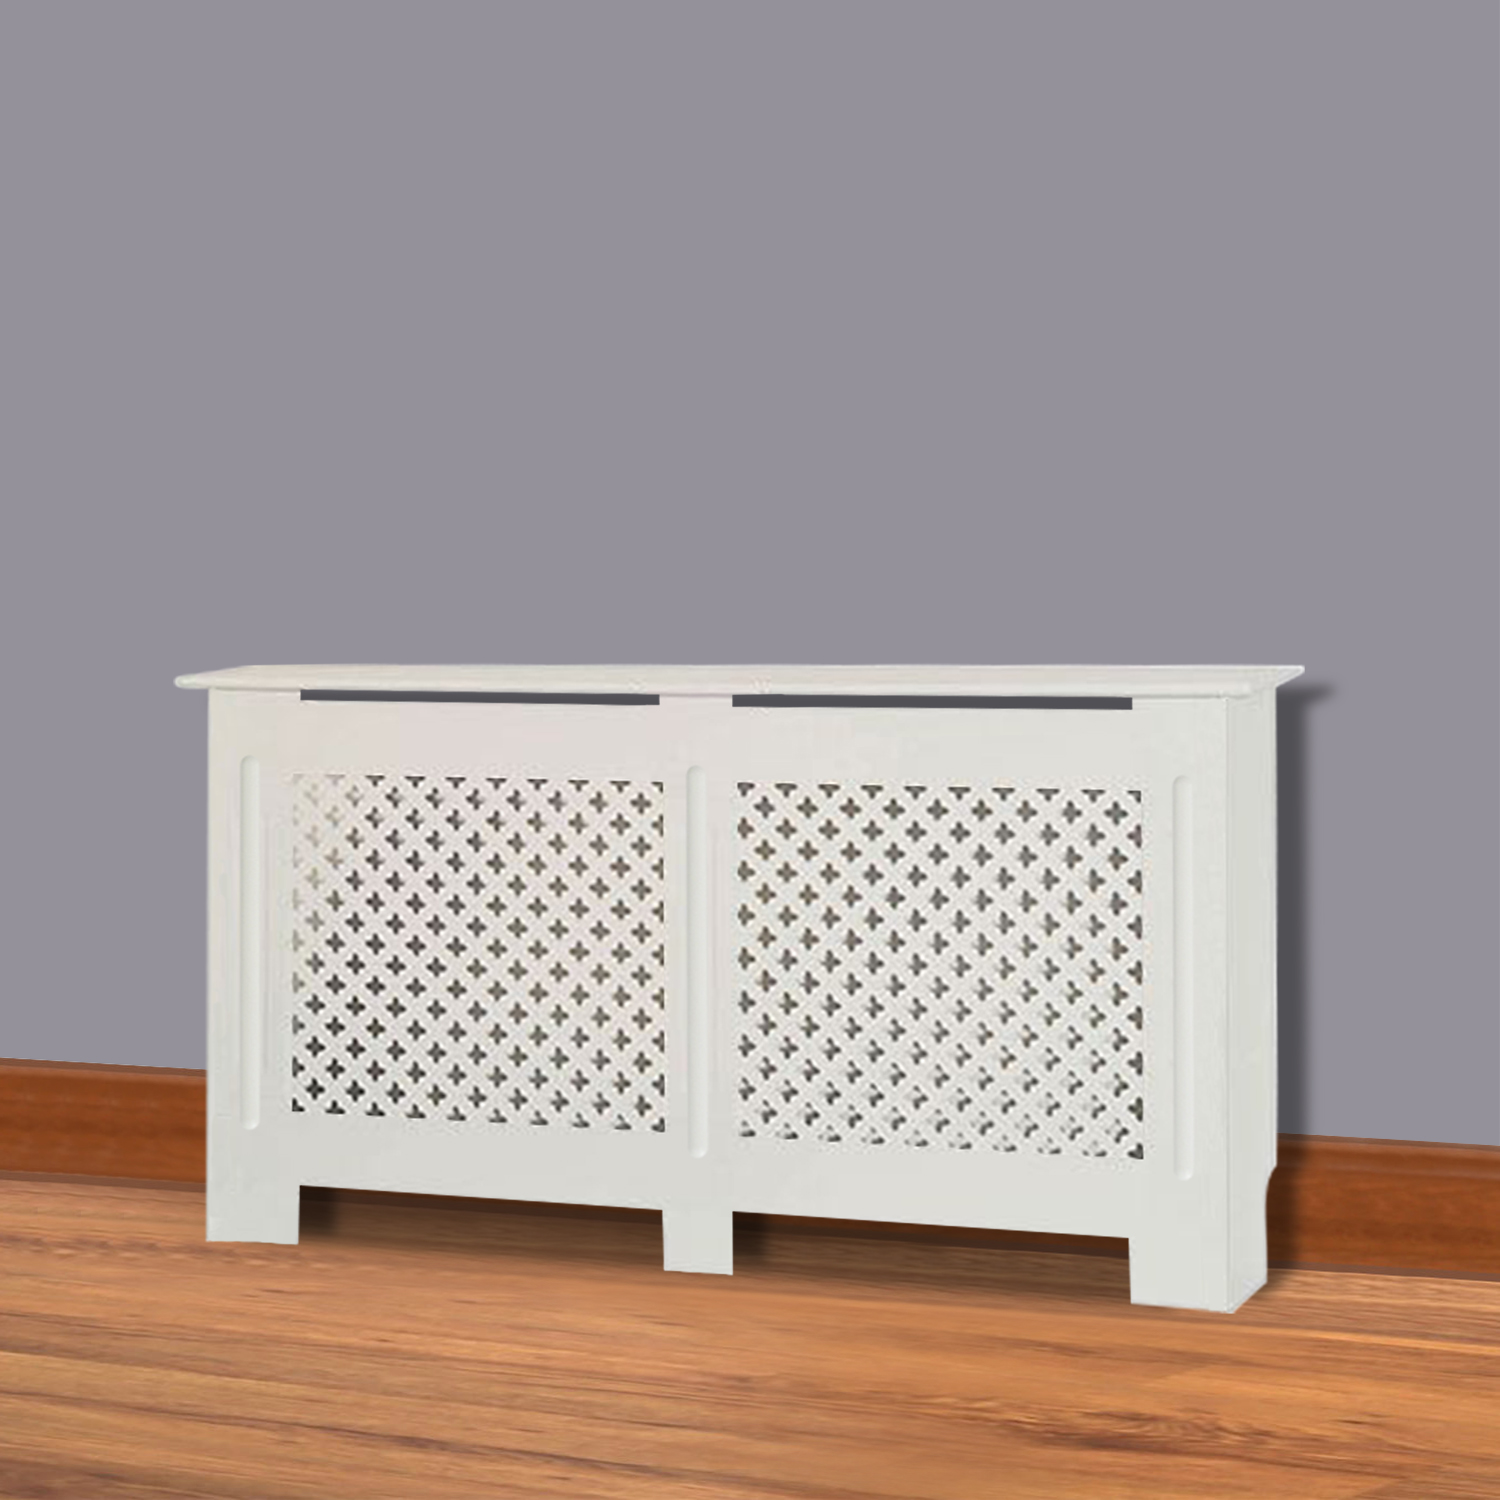 Modern Traditional Radiator Cover White Unfinished Wood